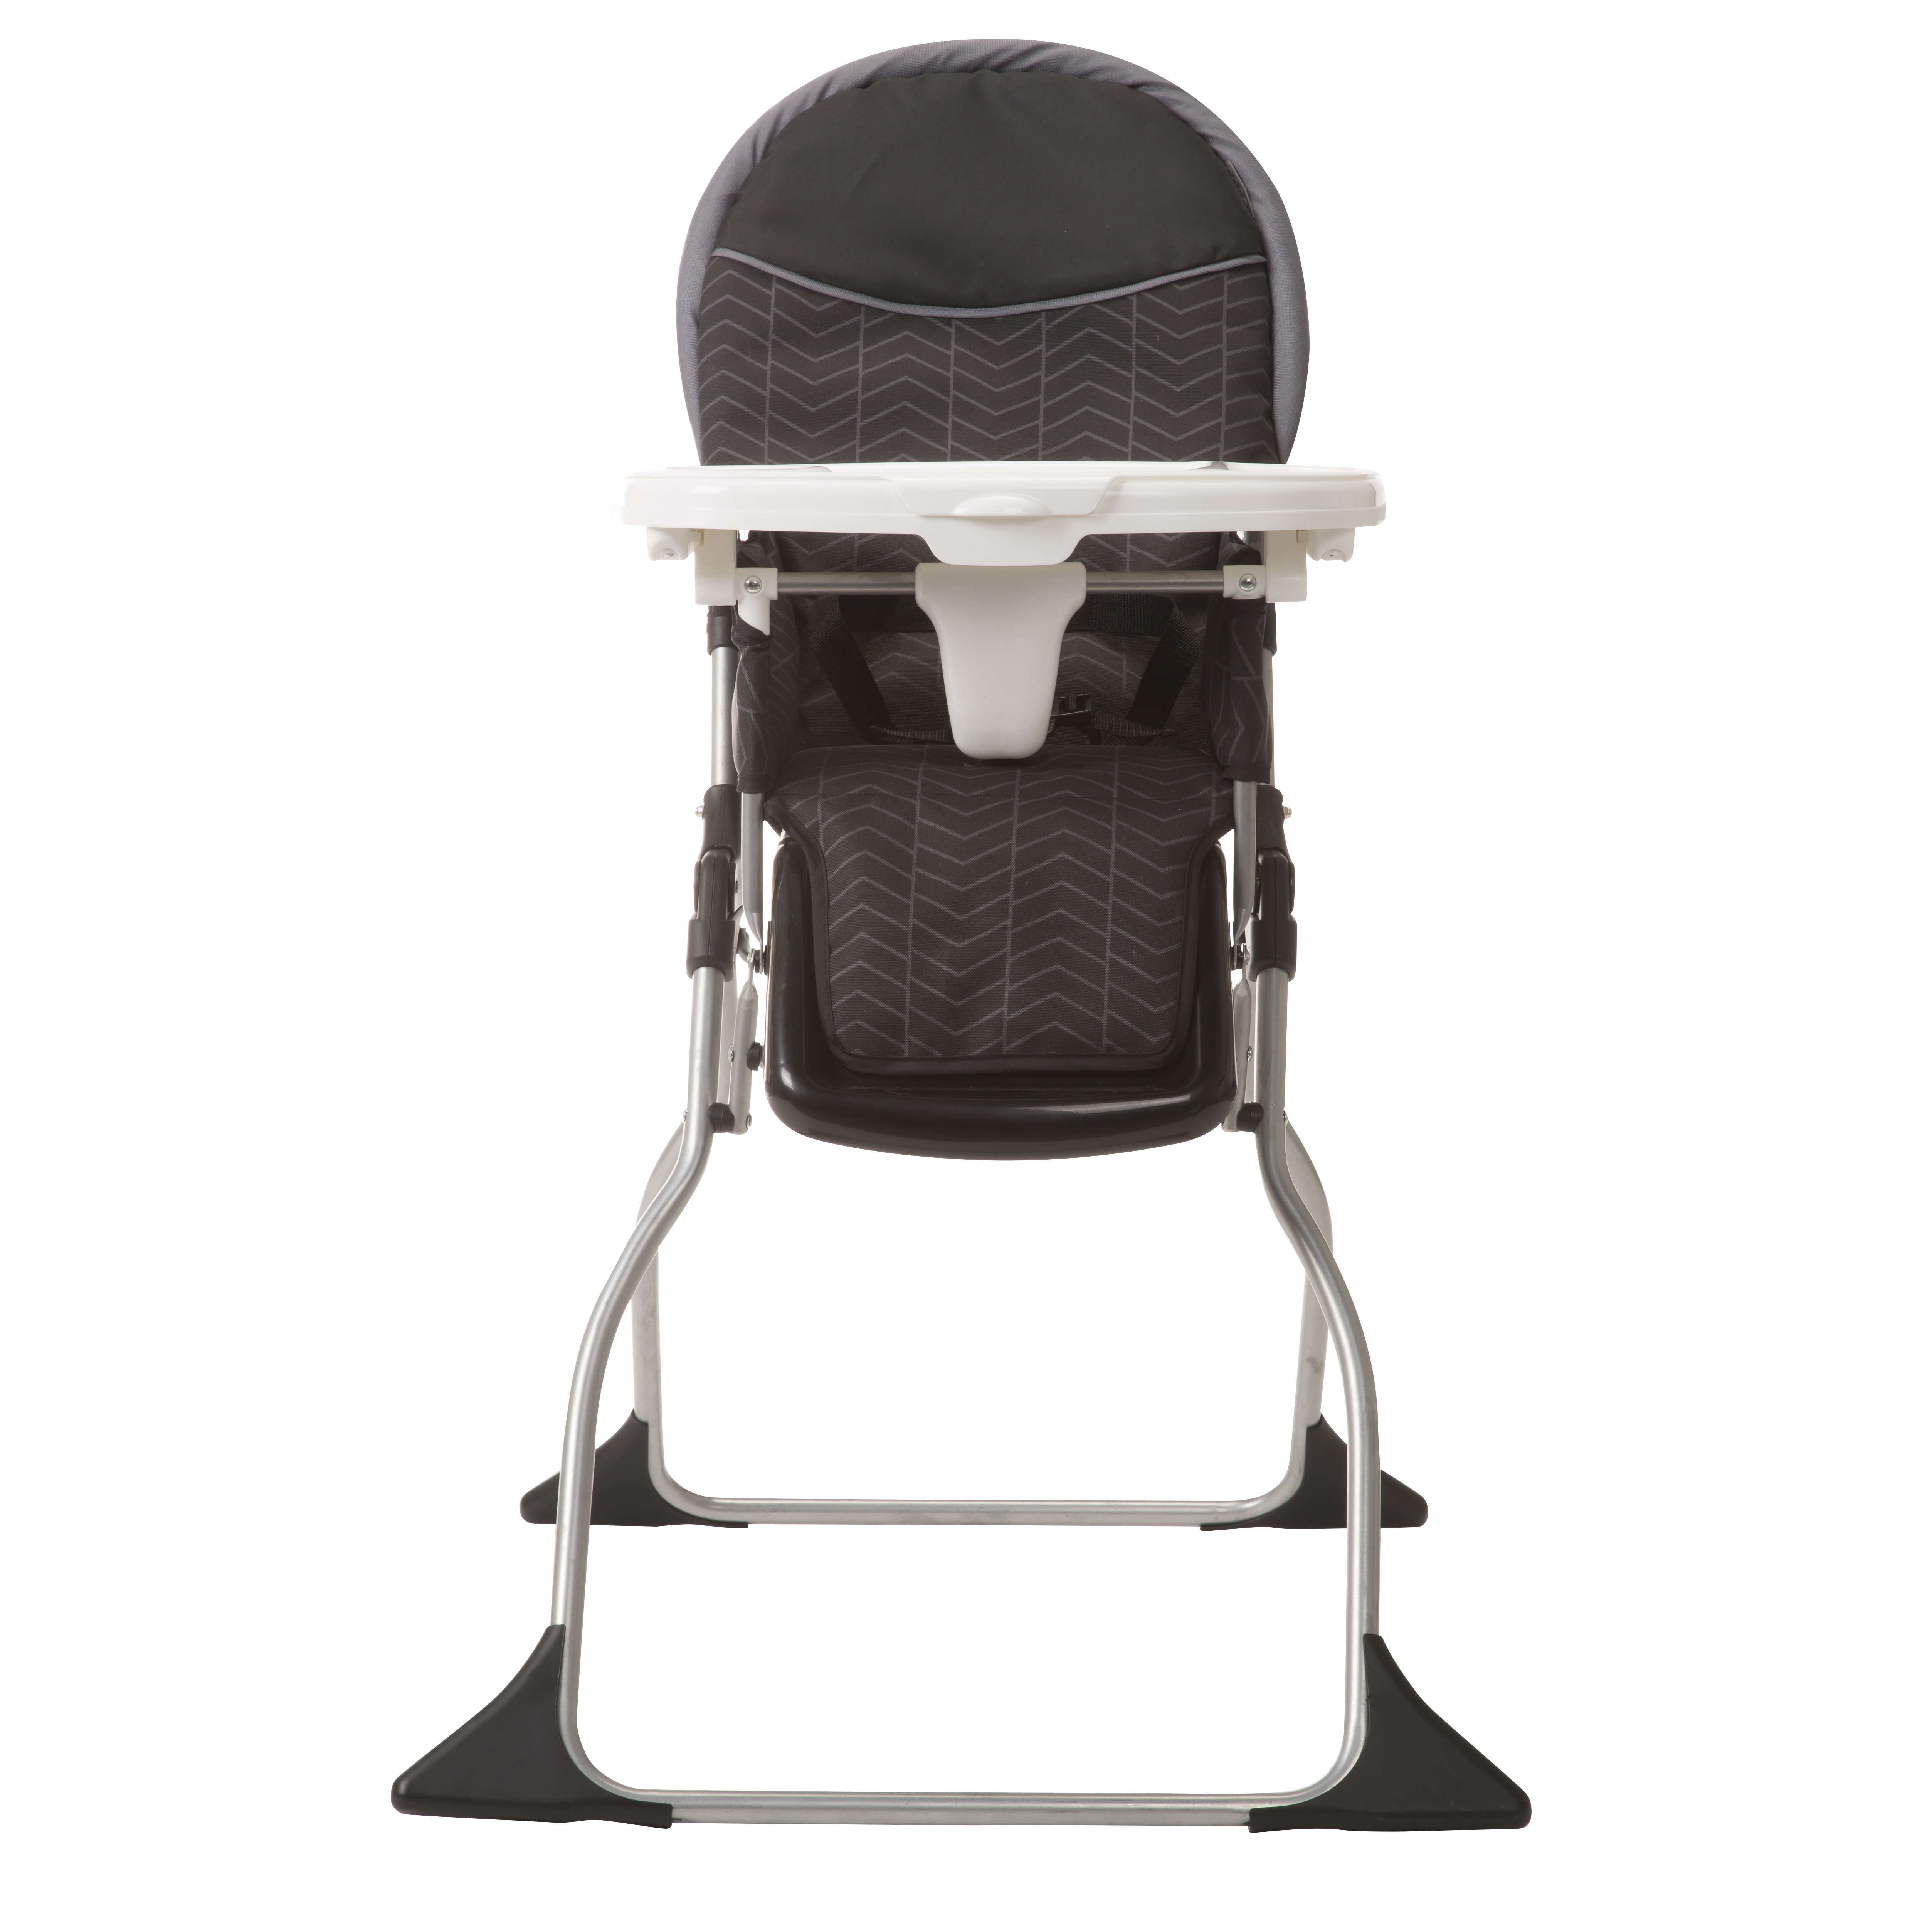 booster high chairs heavy duty fishing chair uk cosco simple fold deluxe black arrows